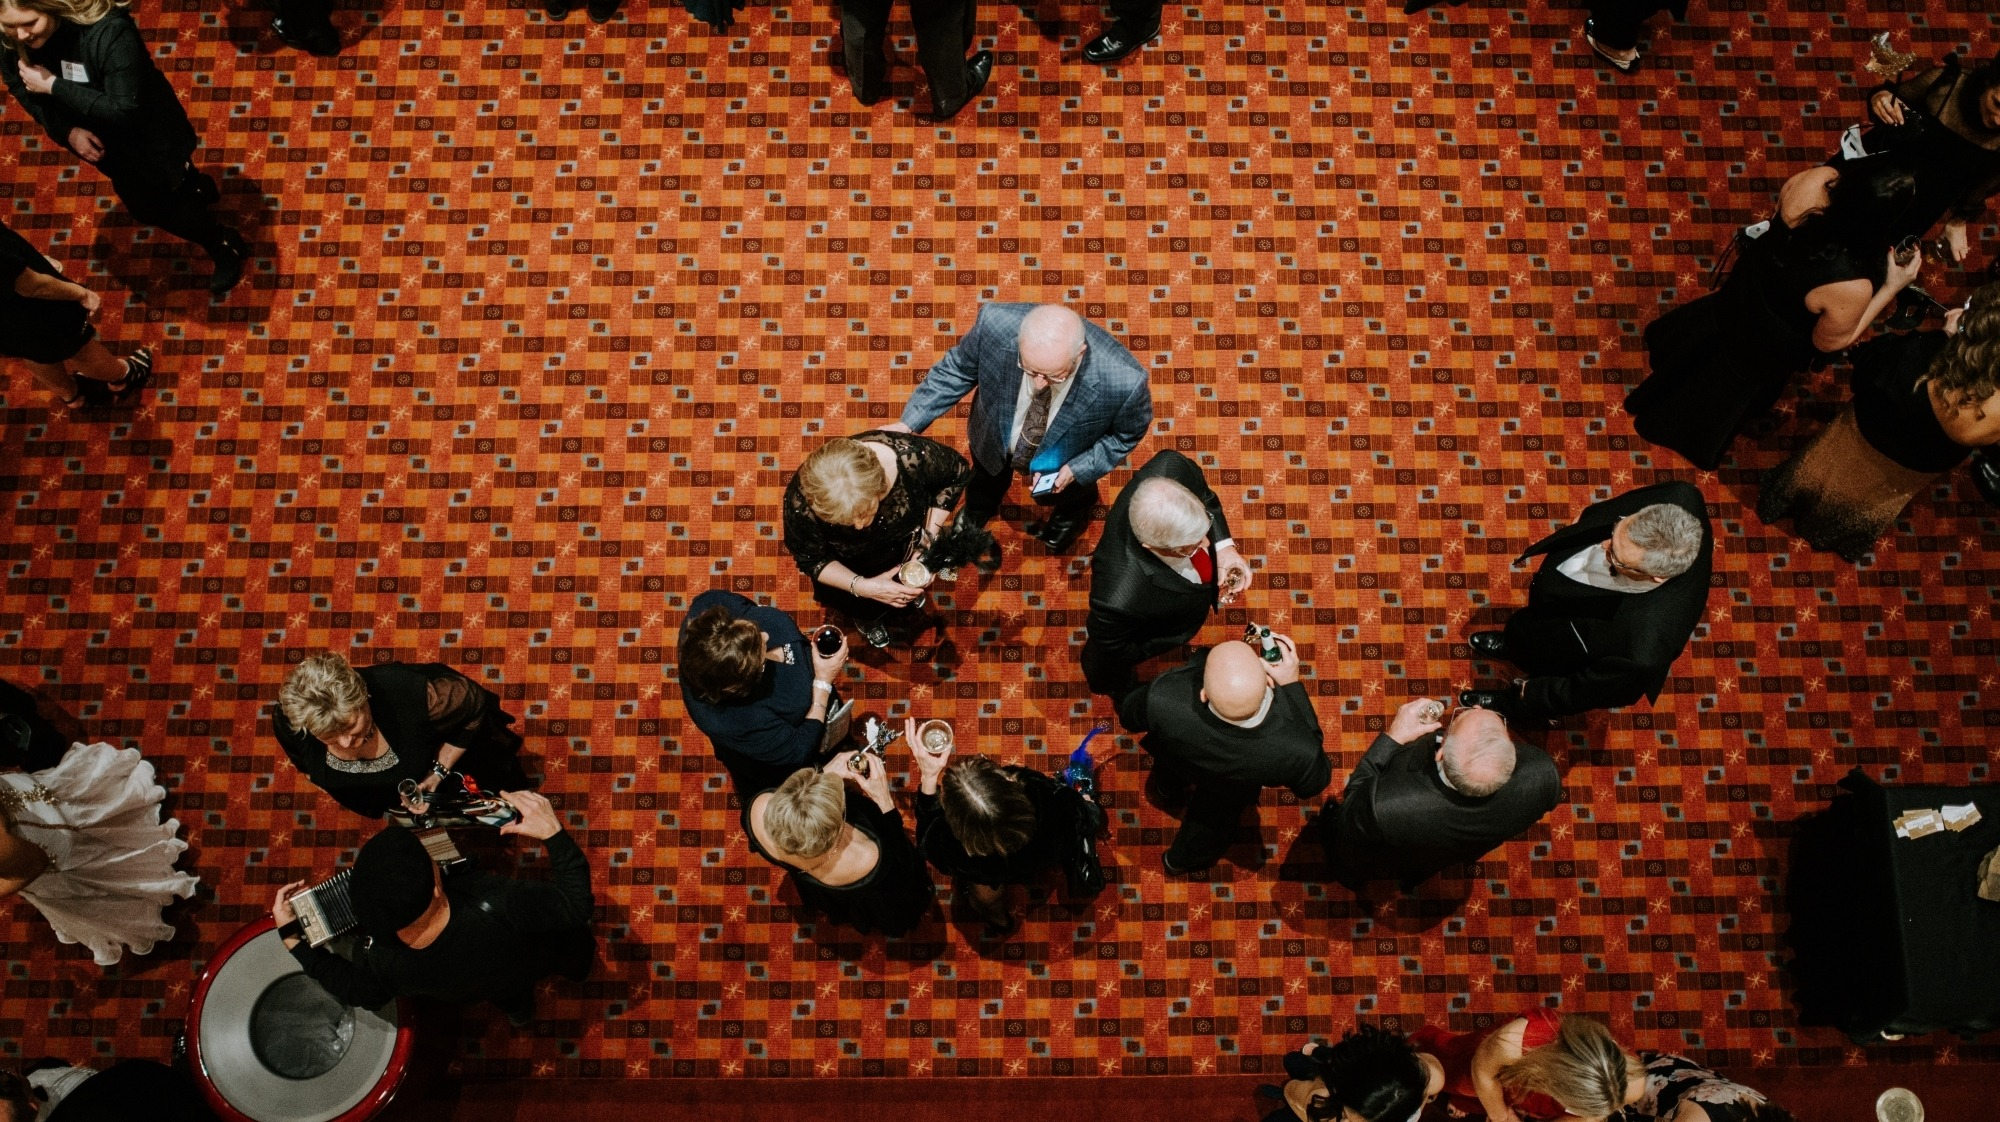 Image from above the Lied Center Orchestra Lobby showing patrons mingling and enjoying cocktails before the Friends of Lied Gala